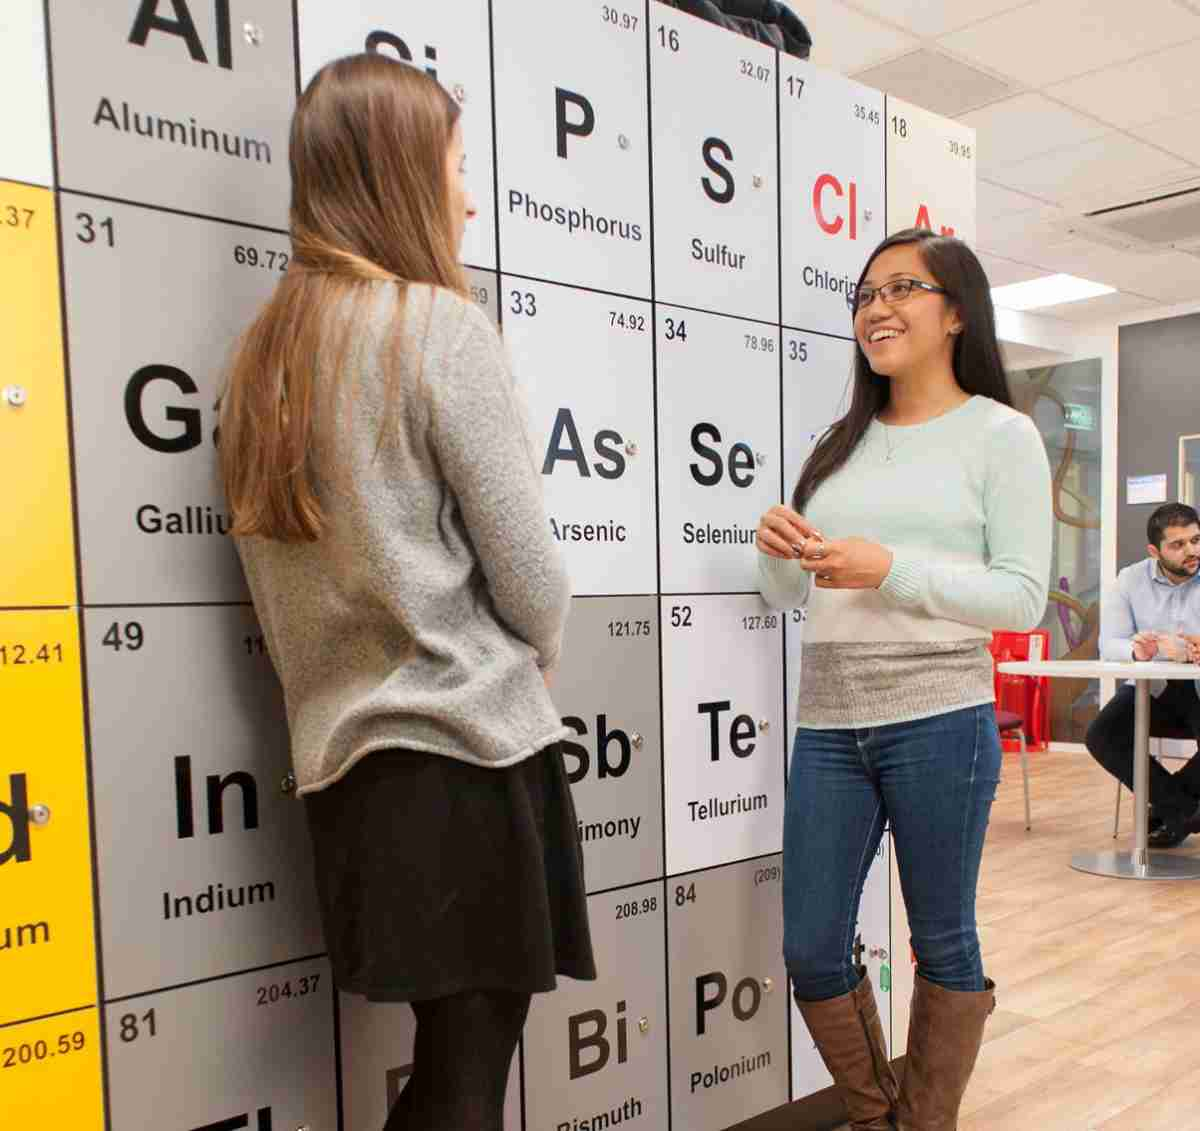 Chemistry BSc(Hons) degree course - London undergraduate